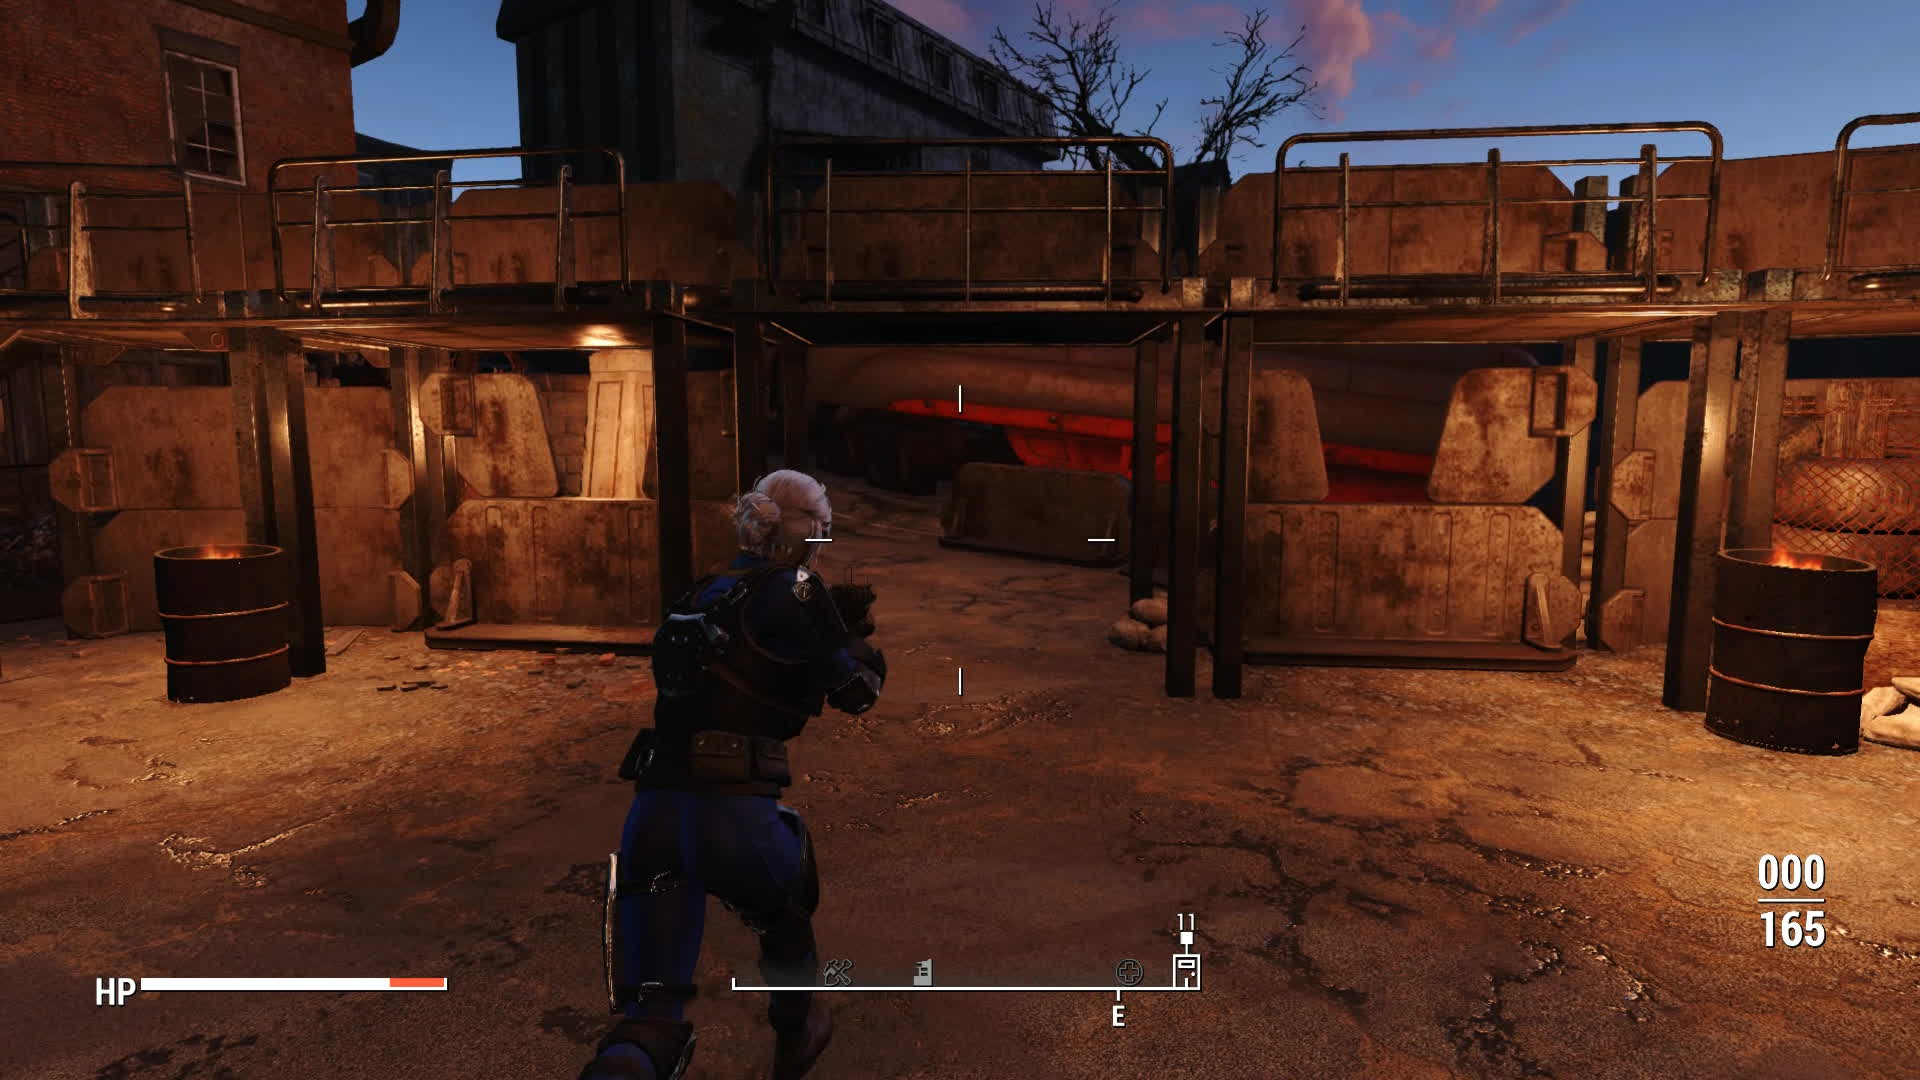 fo4, I'm not even going to ask for an explanation. GIFs